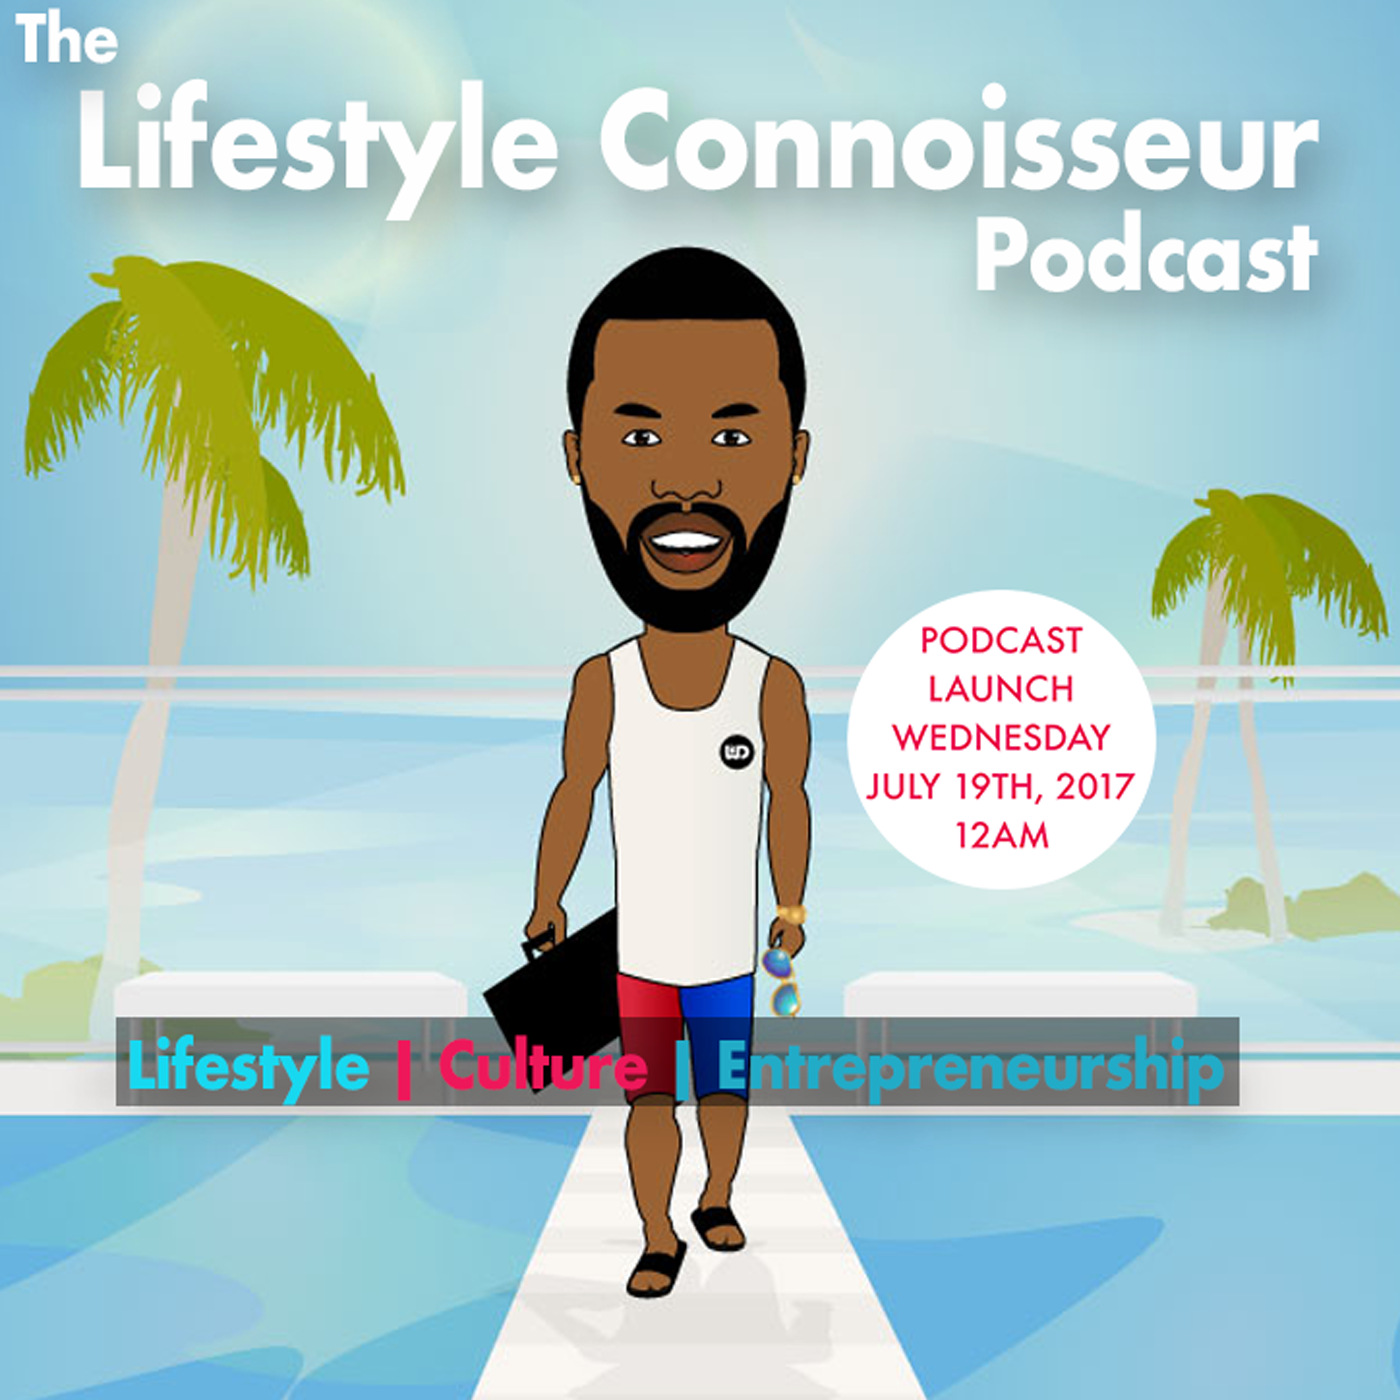 The Lifestyle Connoisseur Podcast hosted by Jean-Désir